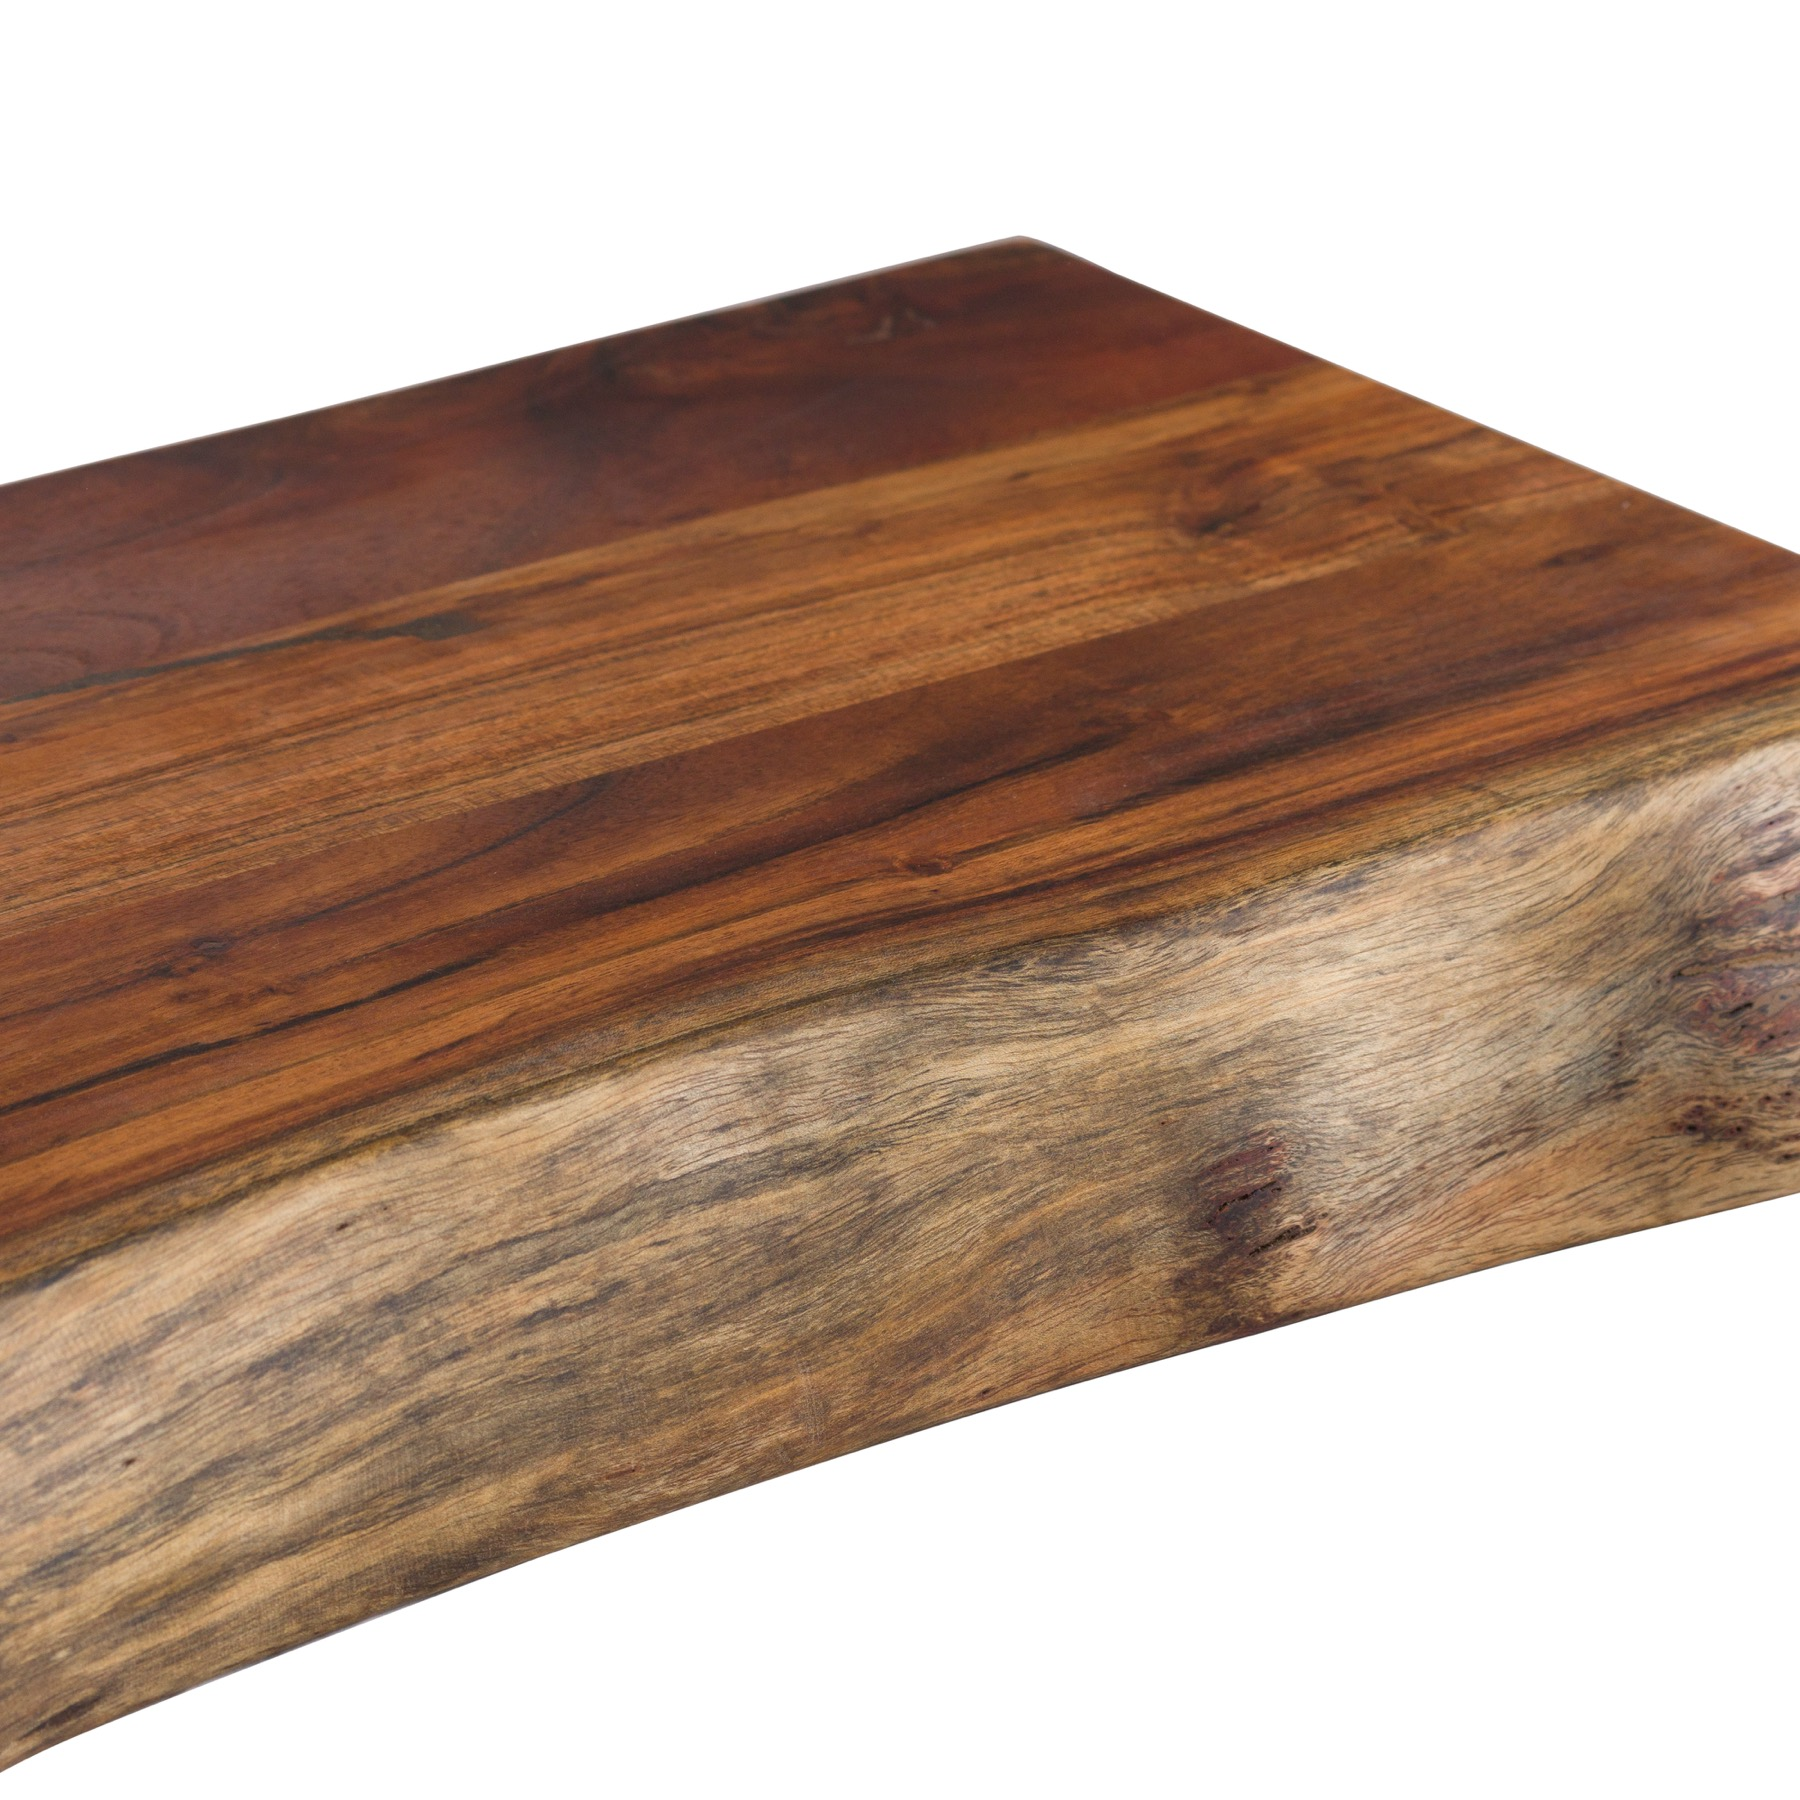 Live Edge Collection Large Pyman Chopping Board - Image 2